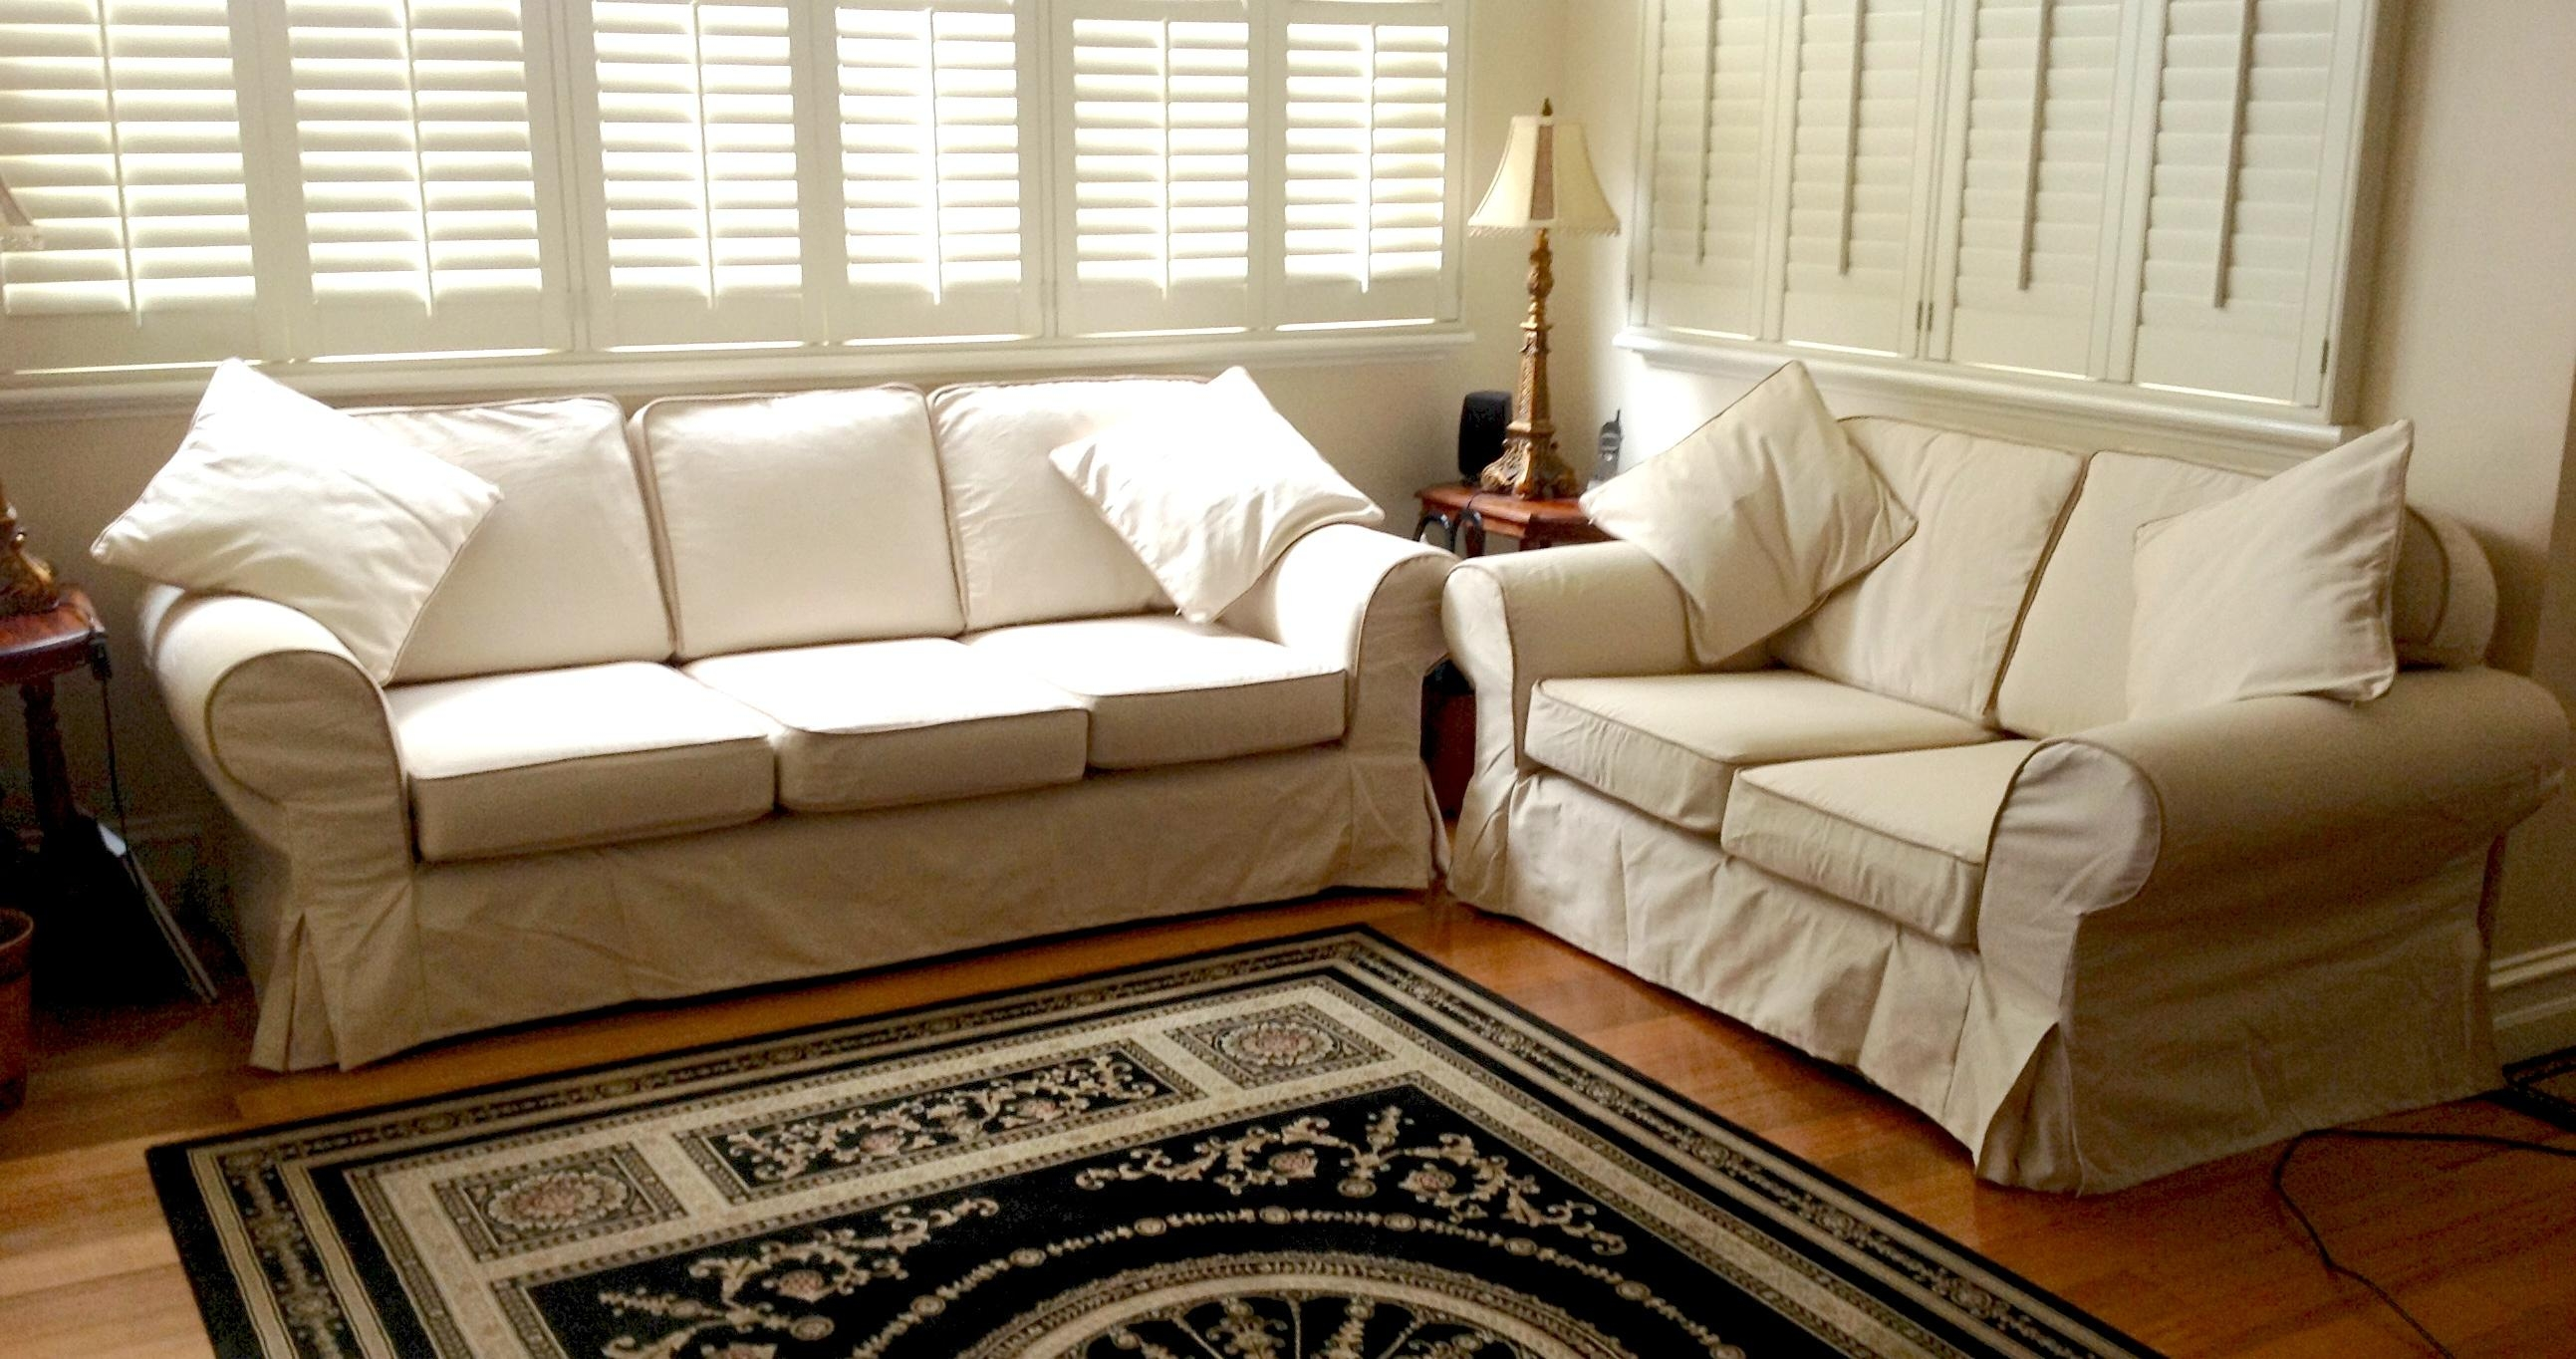 Custom Slipcovers And Couch Cover For Any Sofa Online With Canvas Sofas Covers (View 10 of 20)